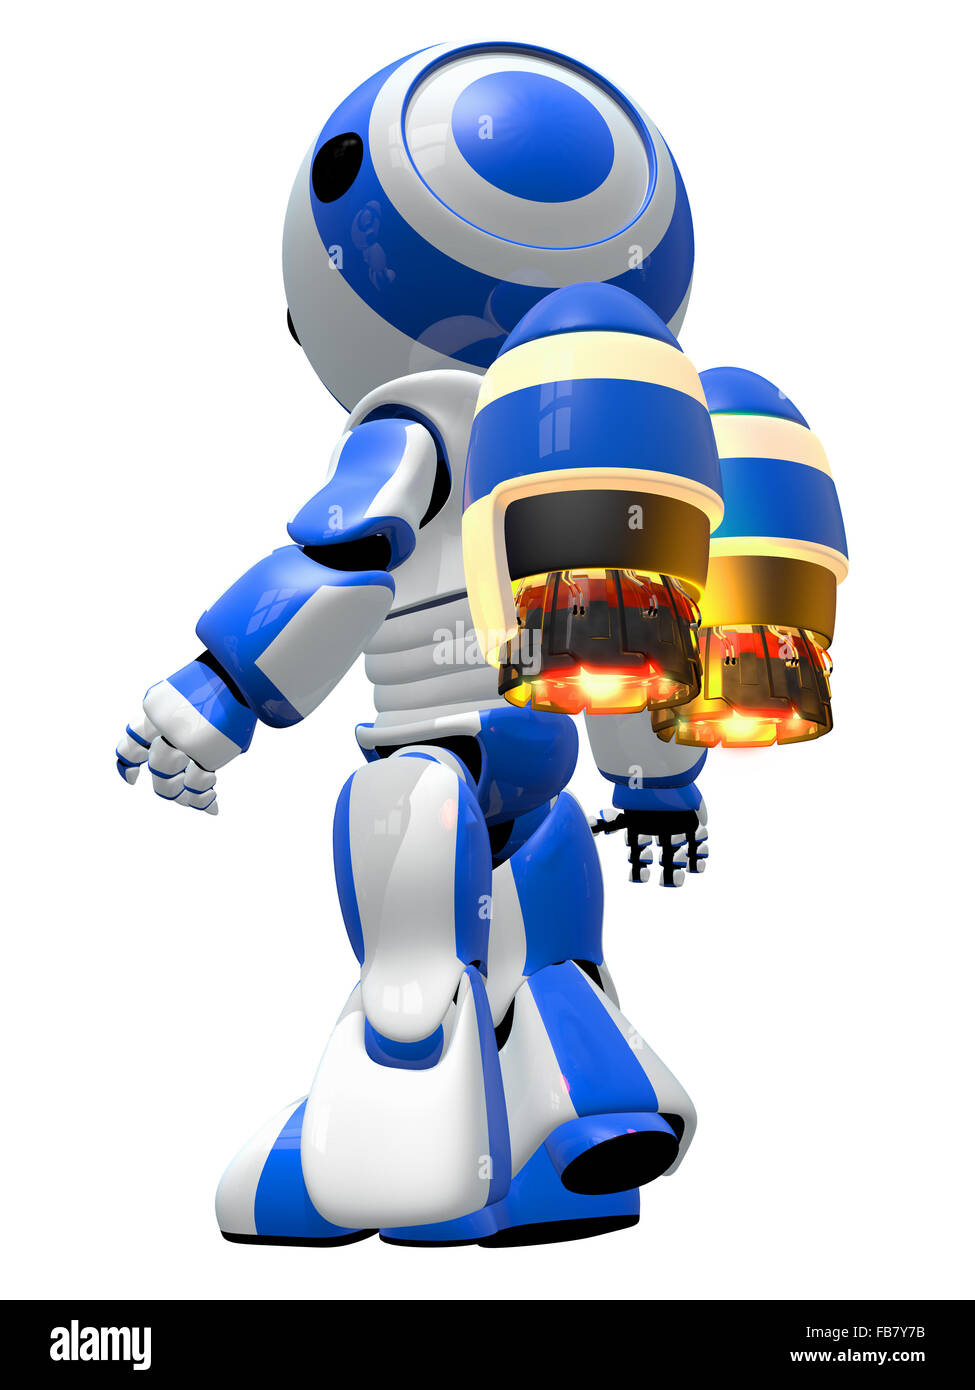 Robot rocketeer with jetpack, ready to take off and fly to new discoveries. - Stock Image